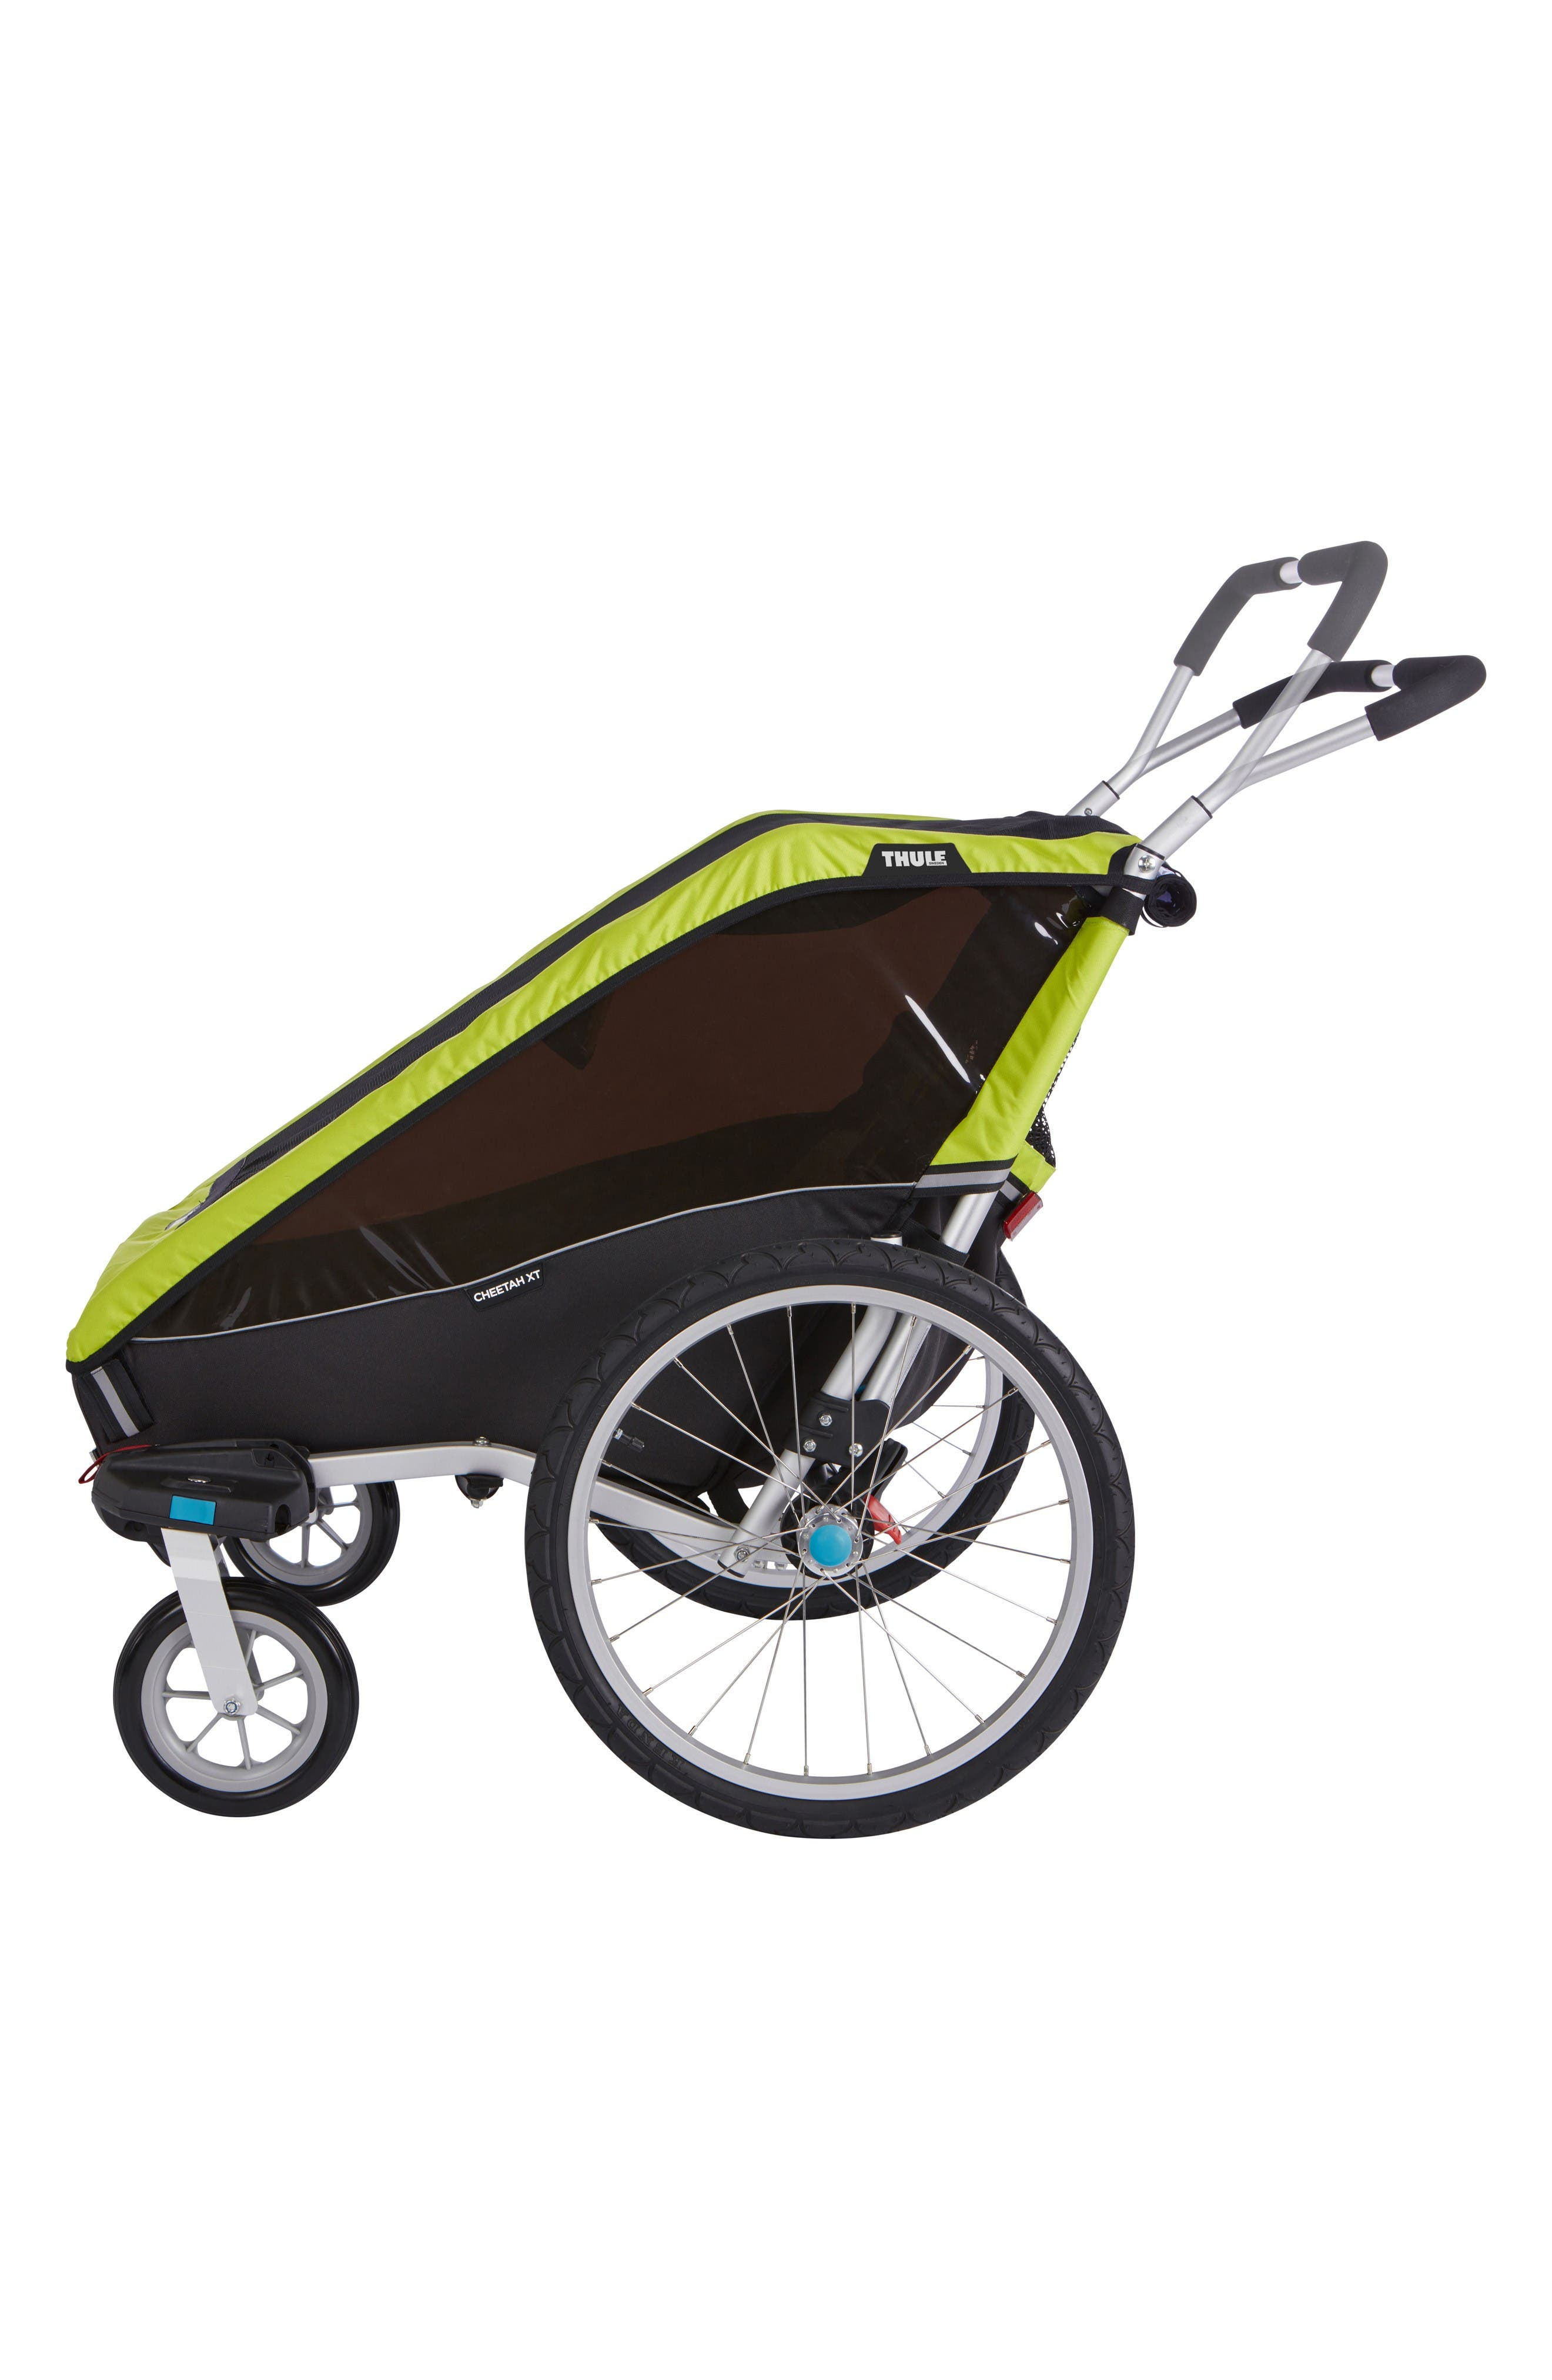 Chariot Cheetah XT 2 Multisport Double Cycle Trailer/Stroller,                             Alternate thumbnail 3, color,                             Chartreuse